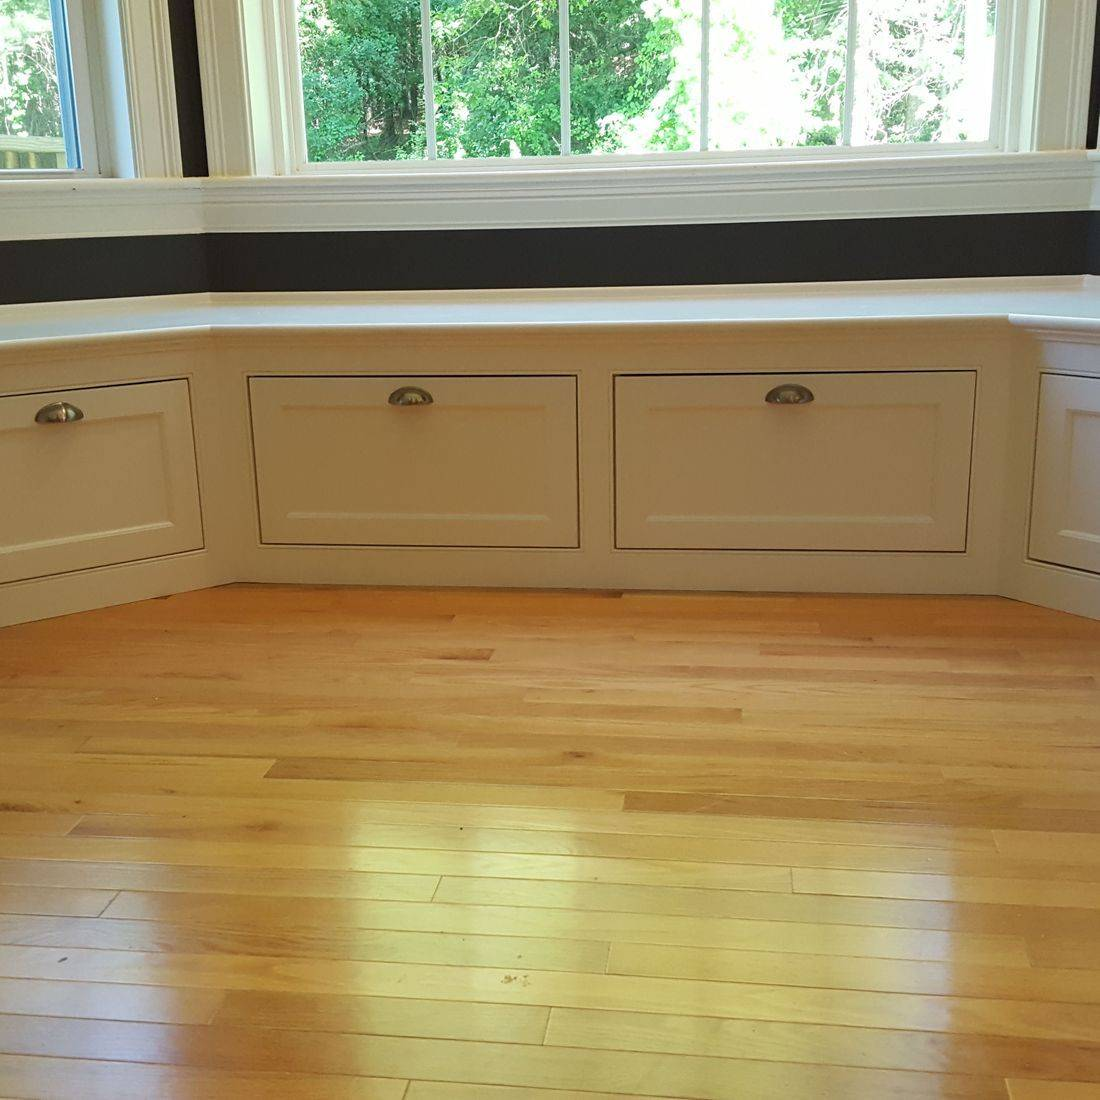 breakfast nook window seat bench storage